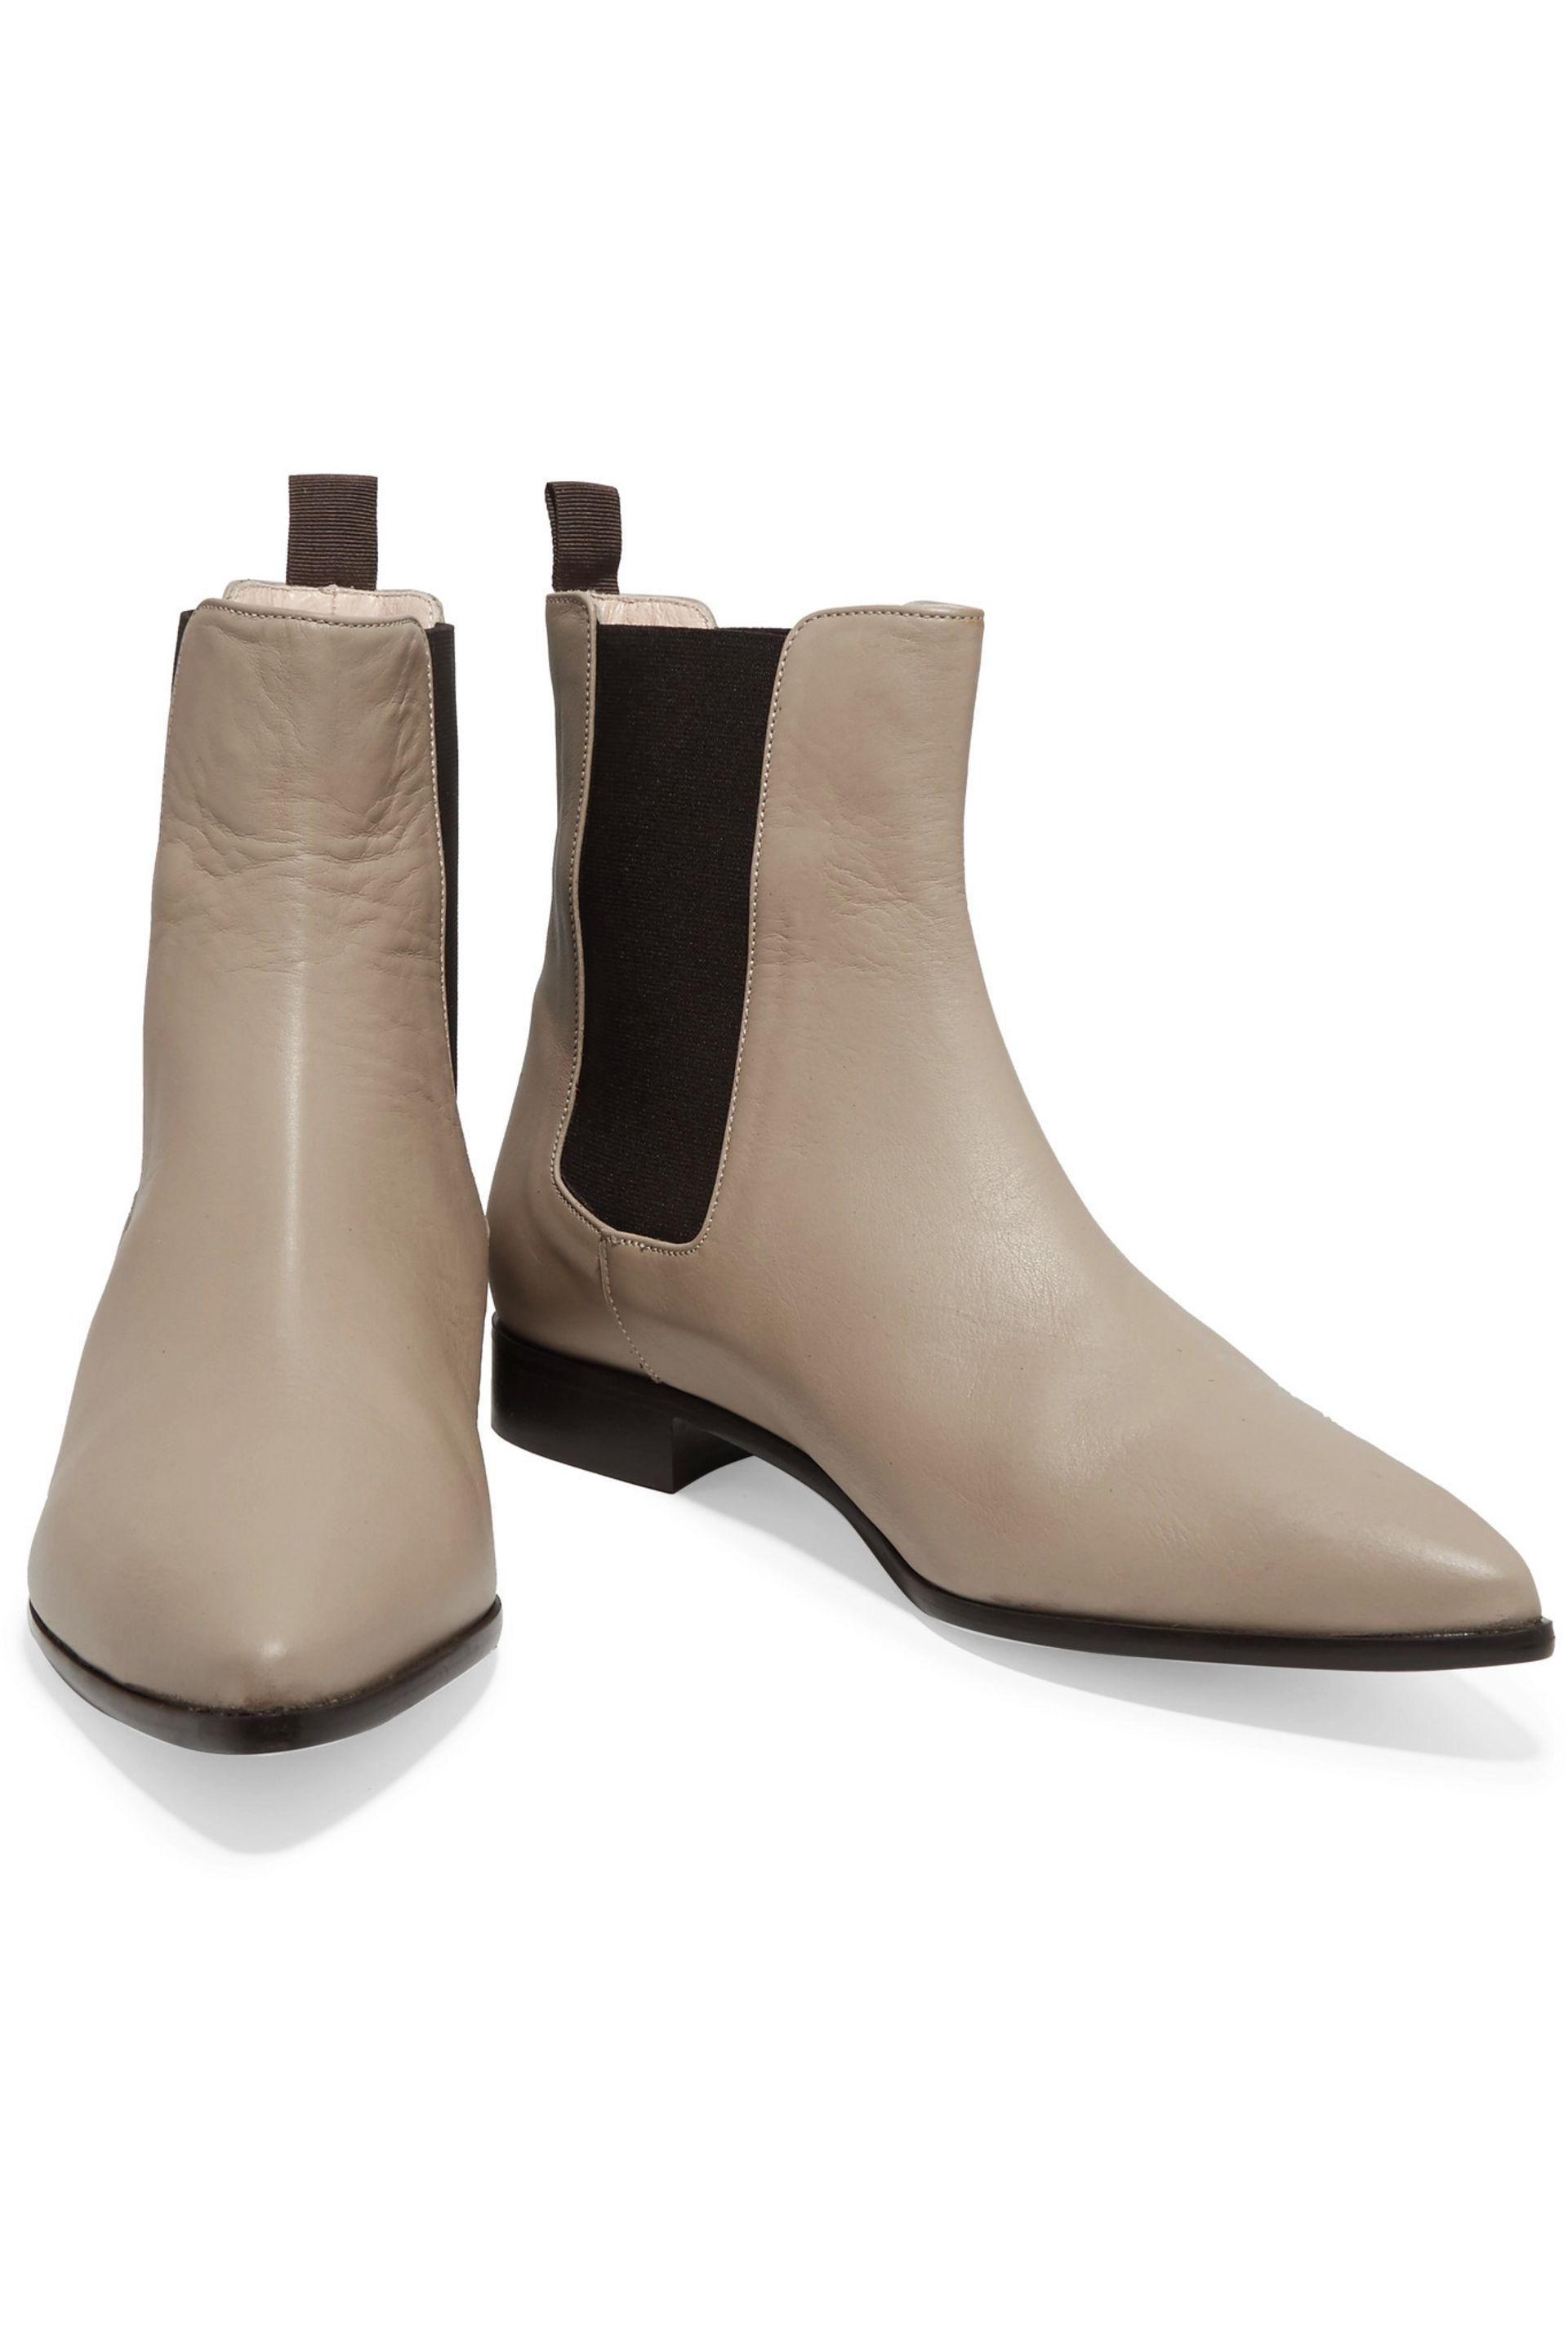 Iris & Ink Elena Leather Ankle Boots in Beige (Natural)